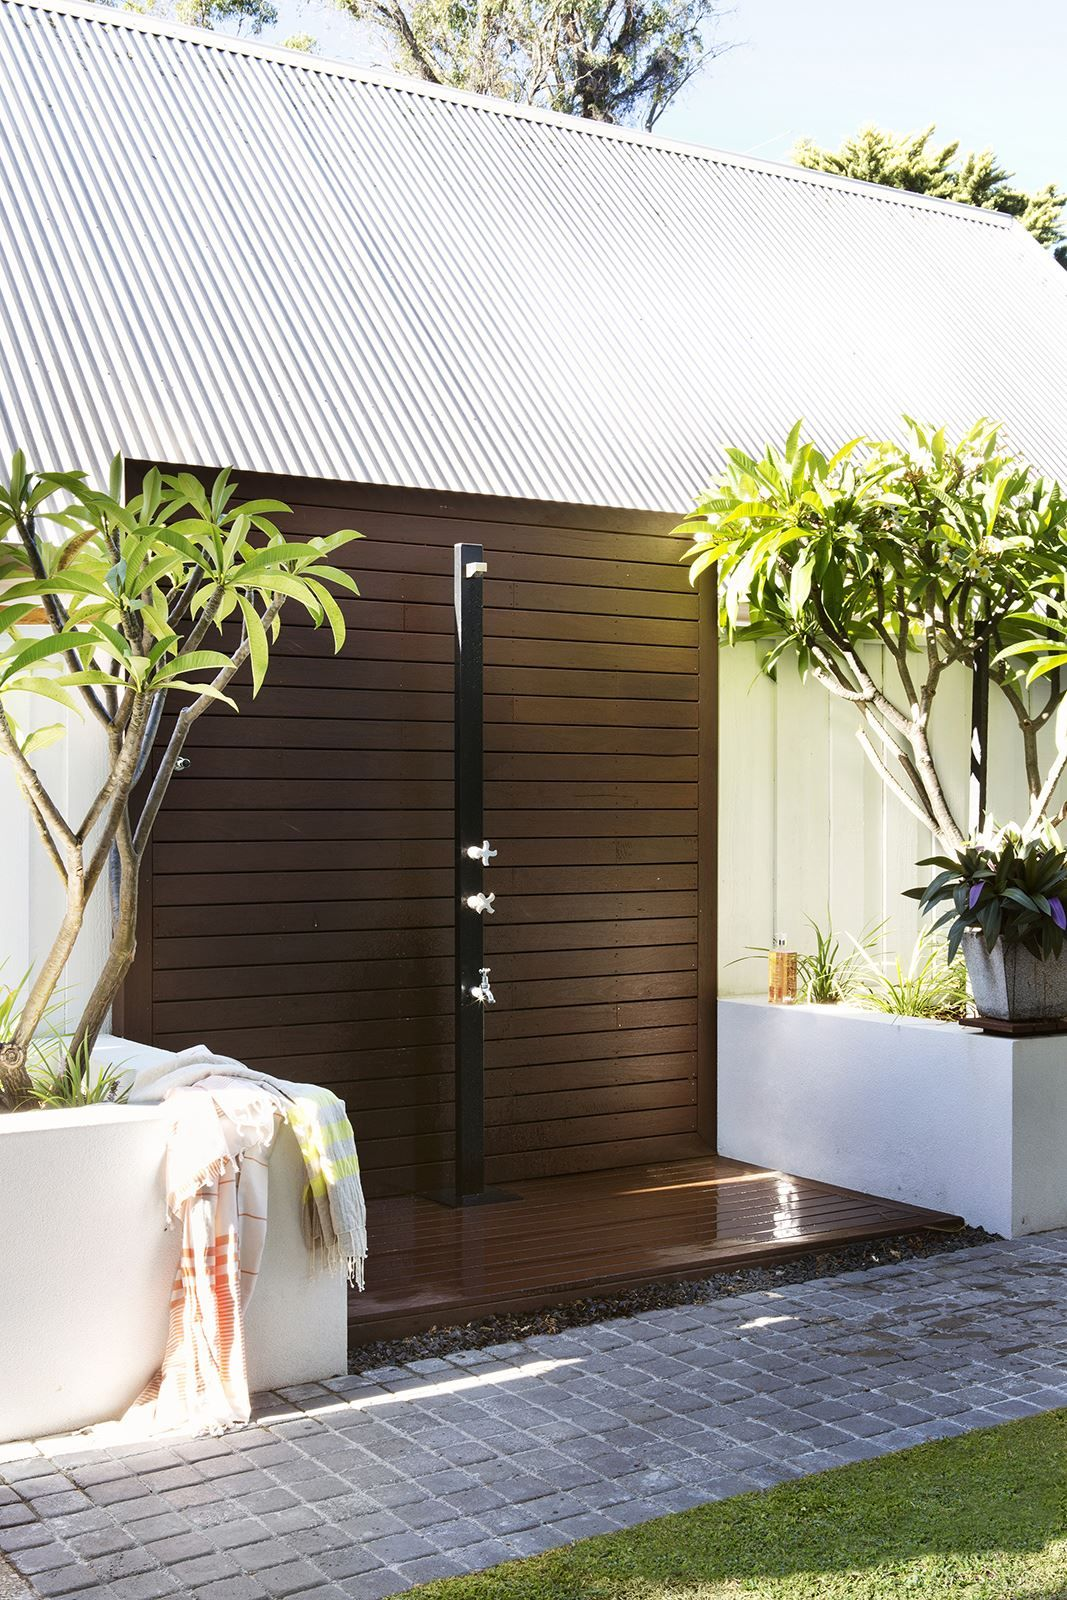 Gallery modern extension to a 1930s bungalow outdoor Decoracion duchas